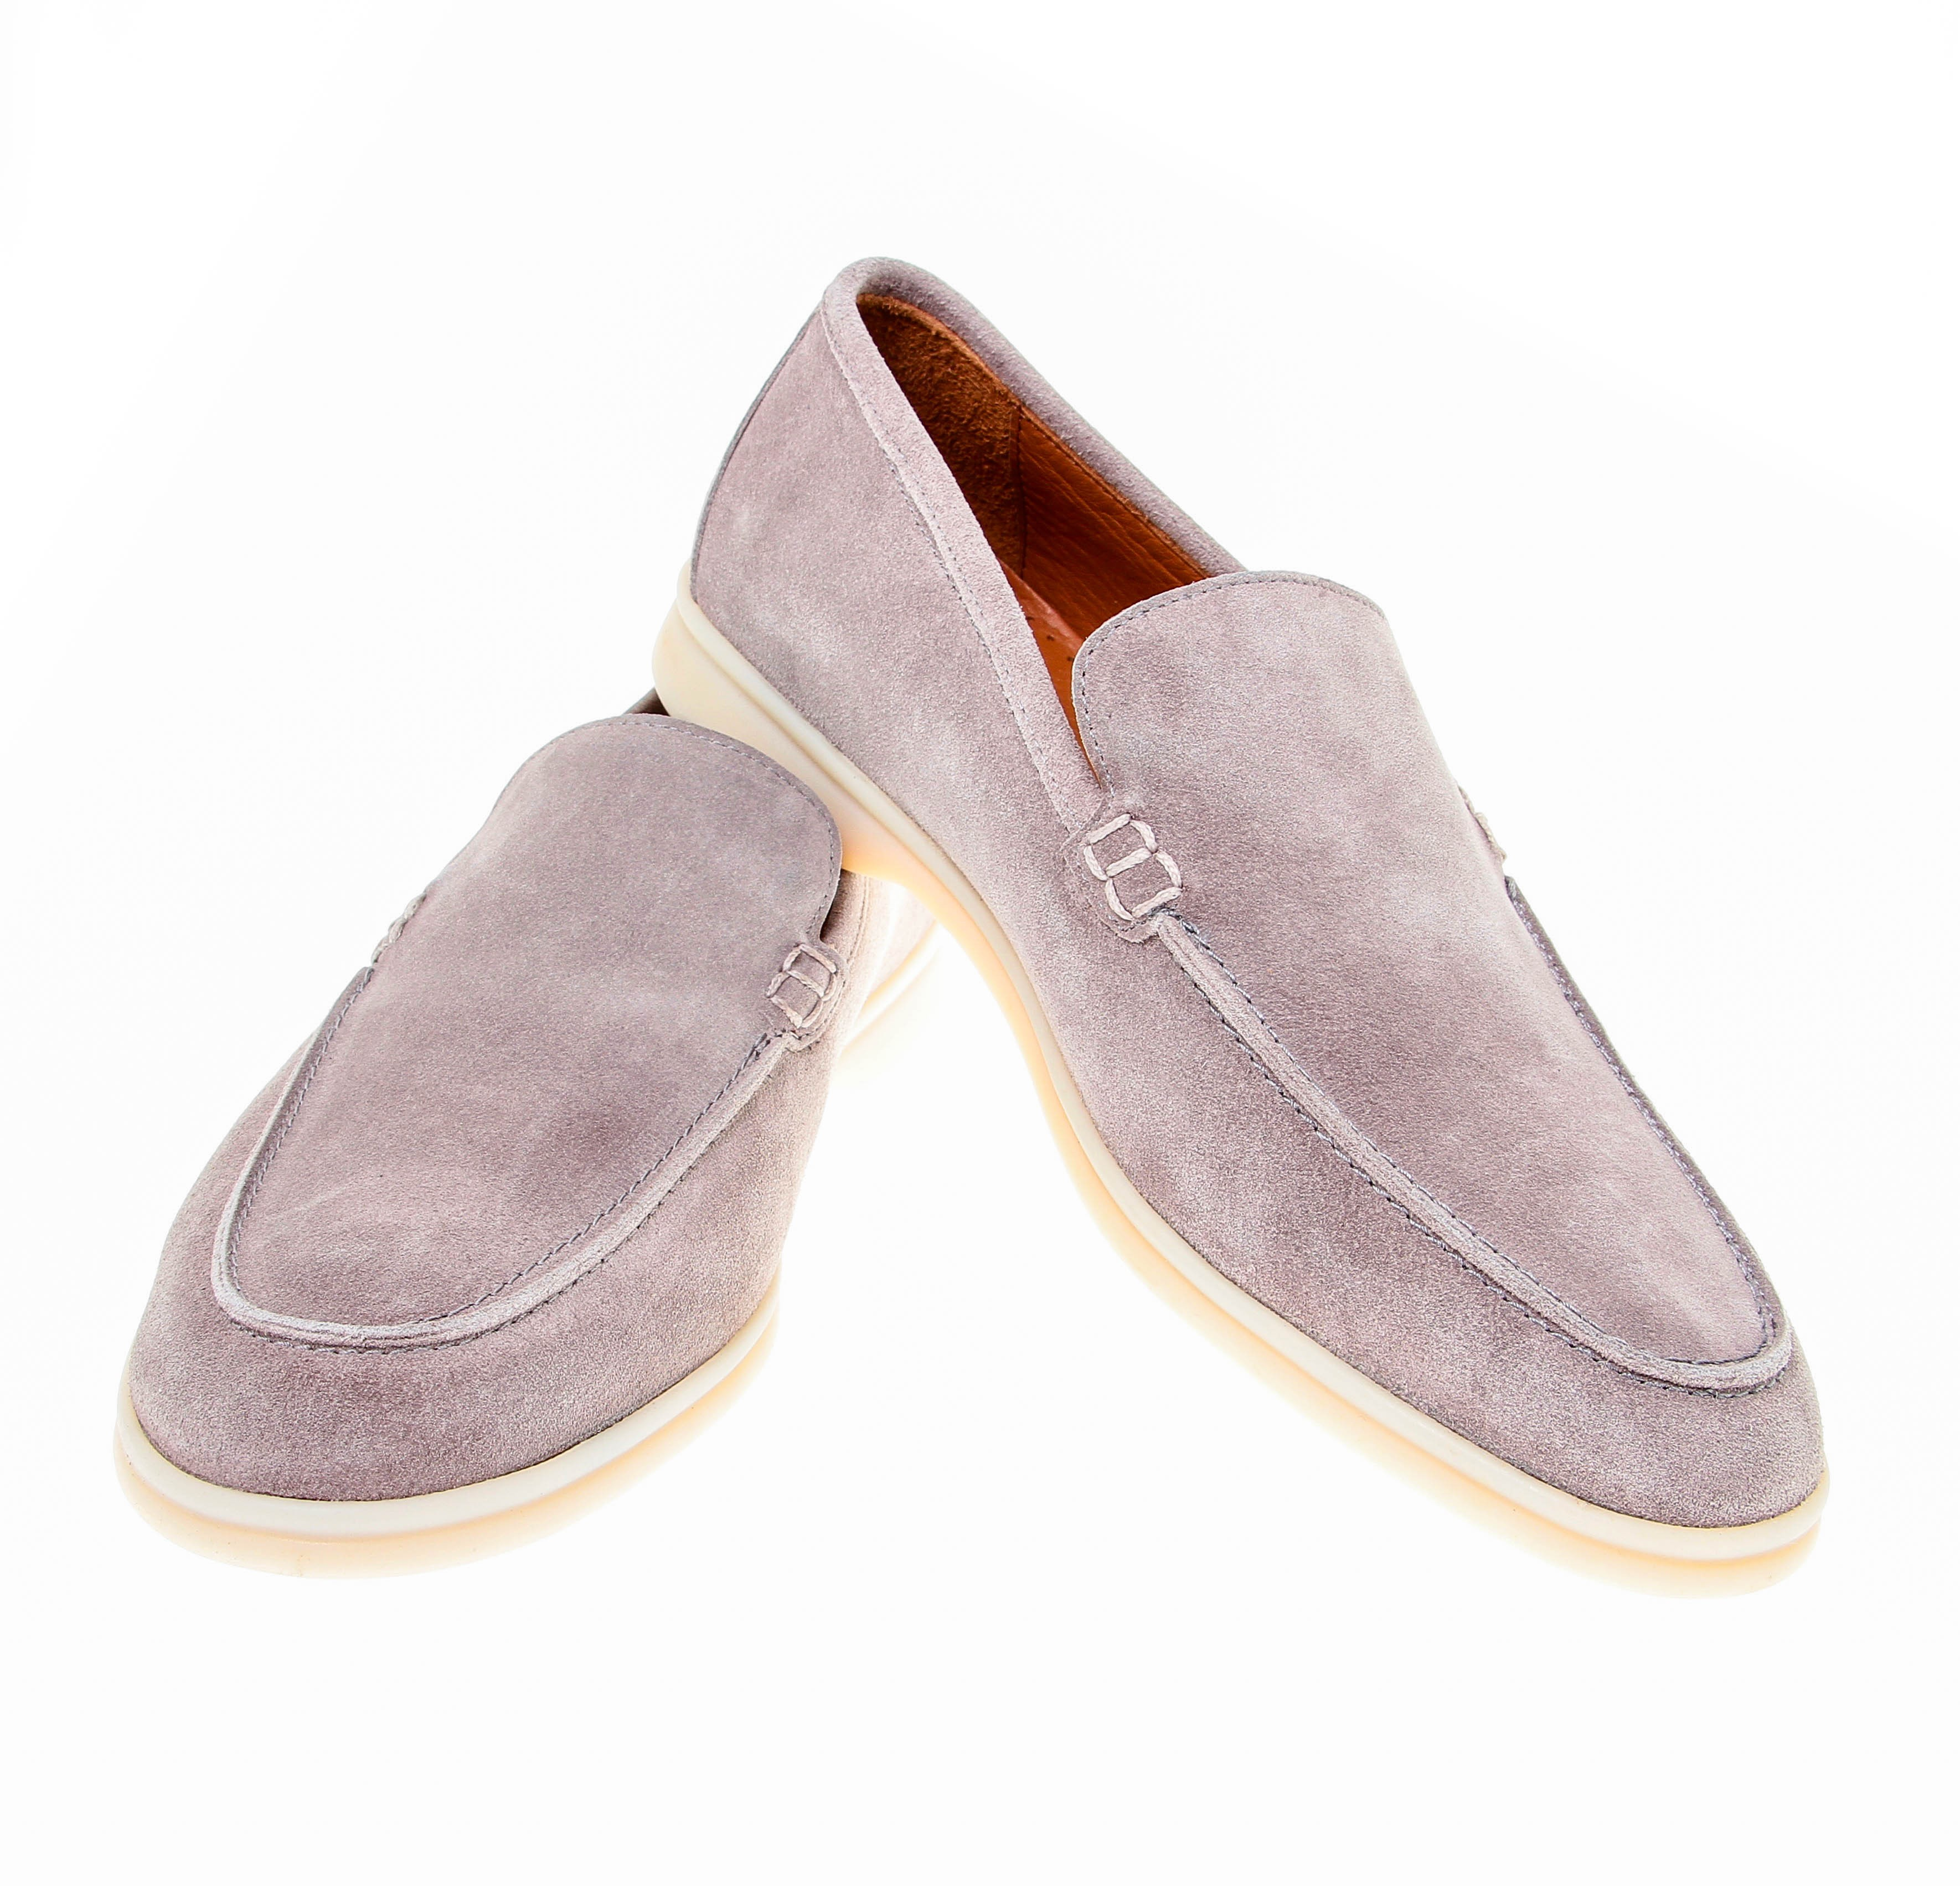 Mocassins : Taupe - Veau Velours - Made in Italy (Shoes)